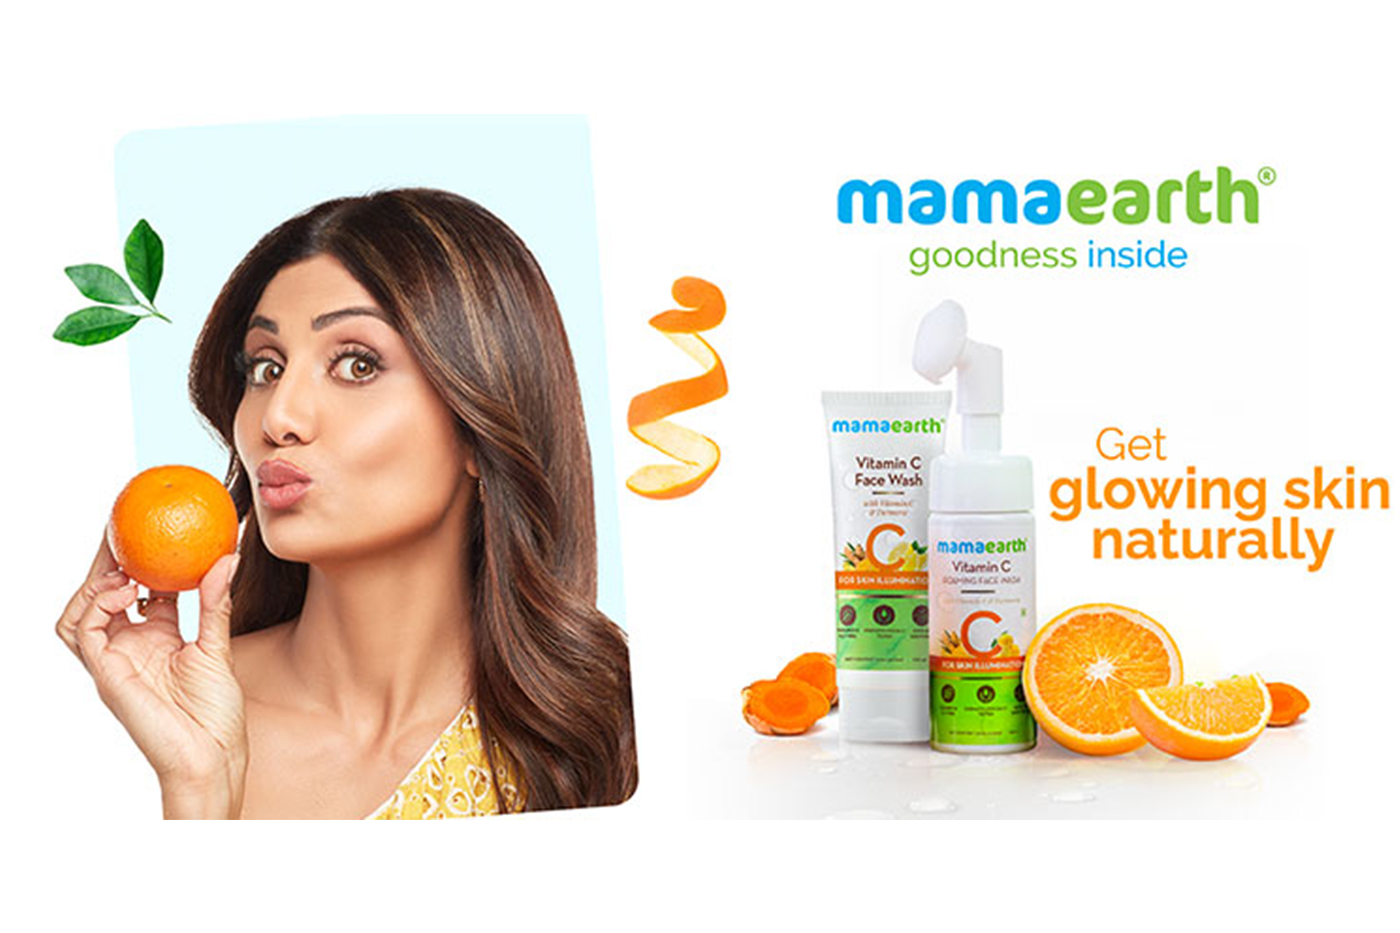 Mamaearth unveils first TVC with Shilpa Shetty Kundra